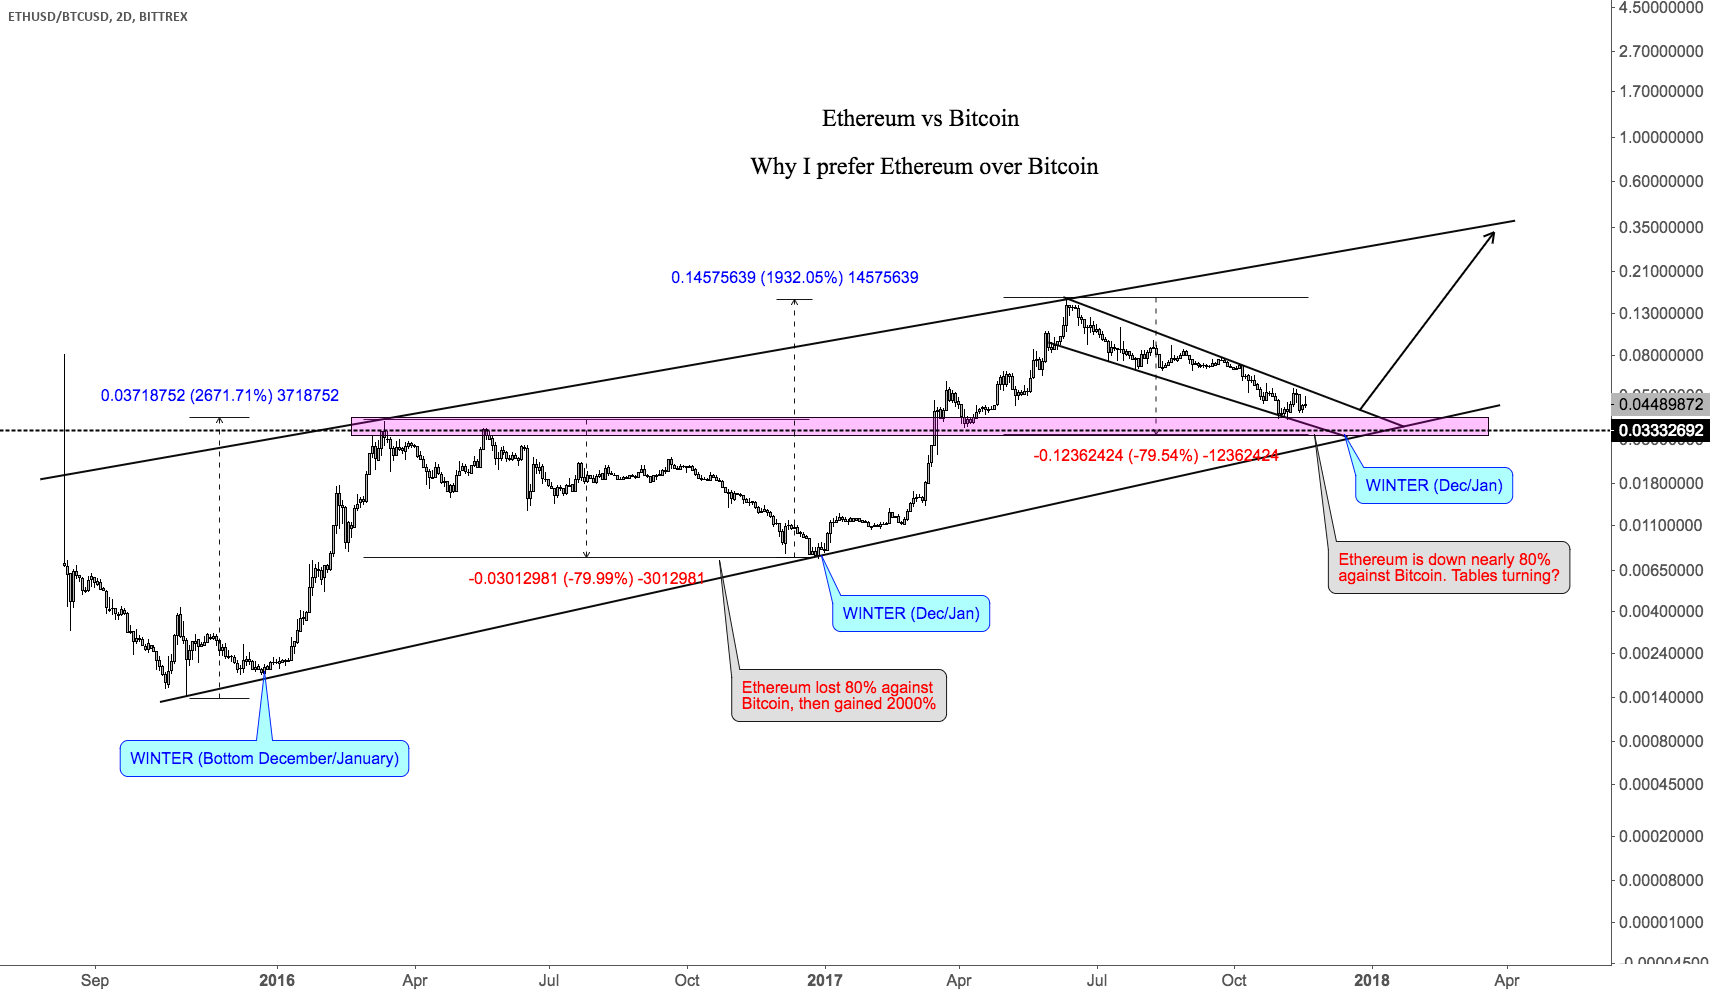 Winter is coming: Ethereum vs Bitcoin